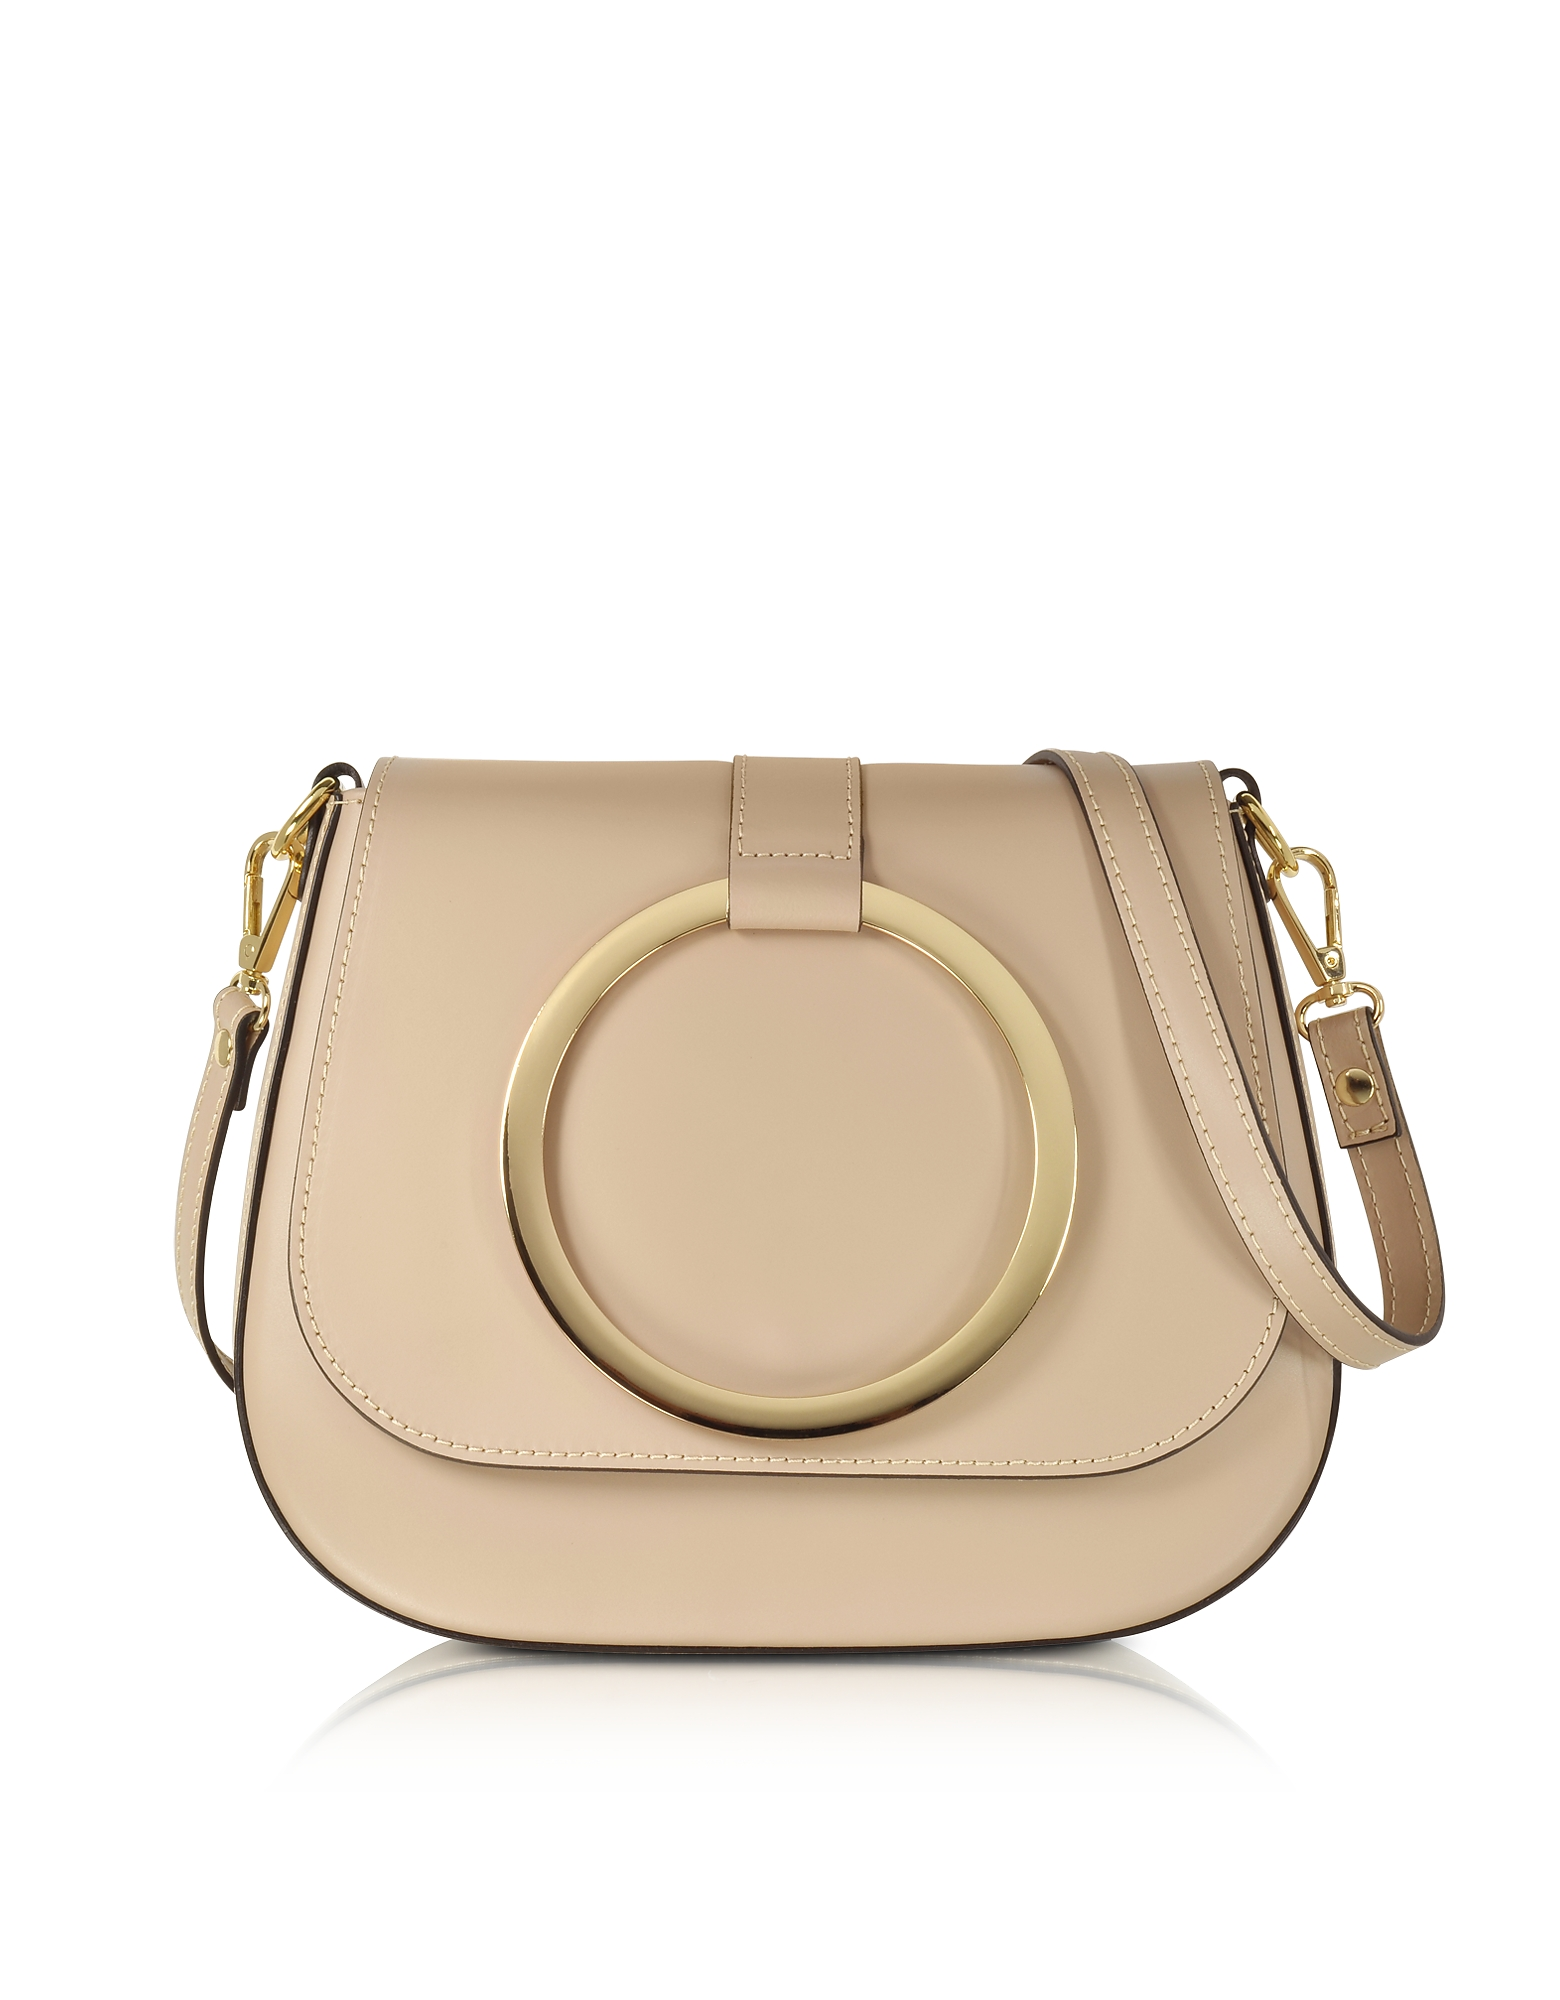 Gisèle 39 Designer Handbags, Smooth Leather Shoulder Bag